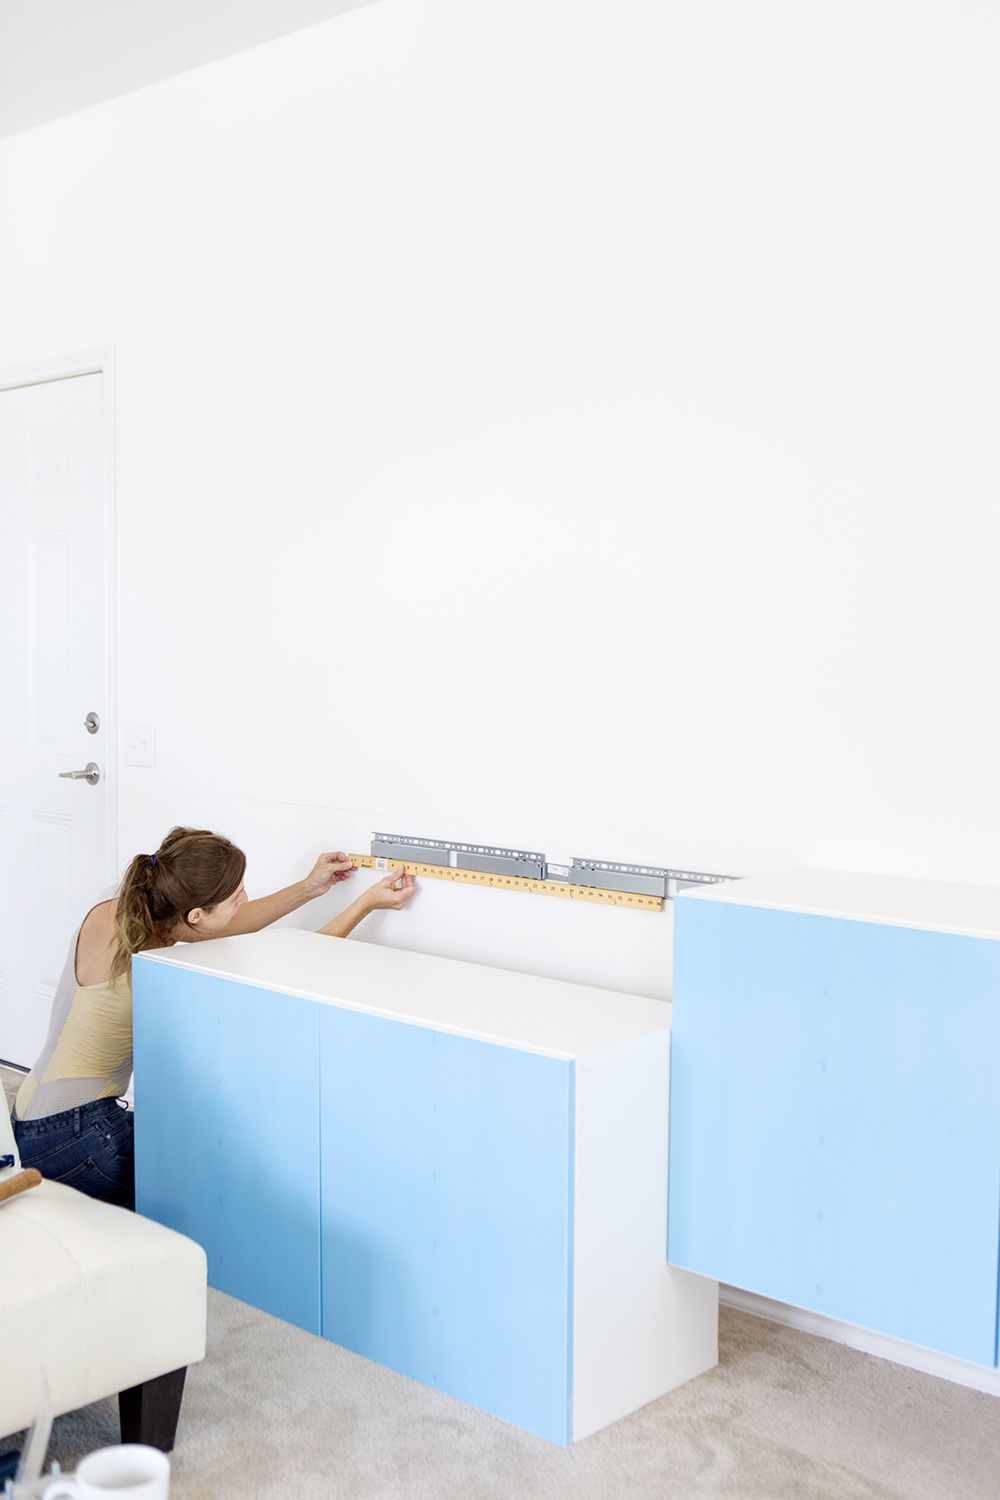 Genial How To Install Wall Mounted IKEA Besta Cabinets